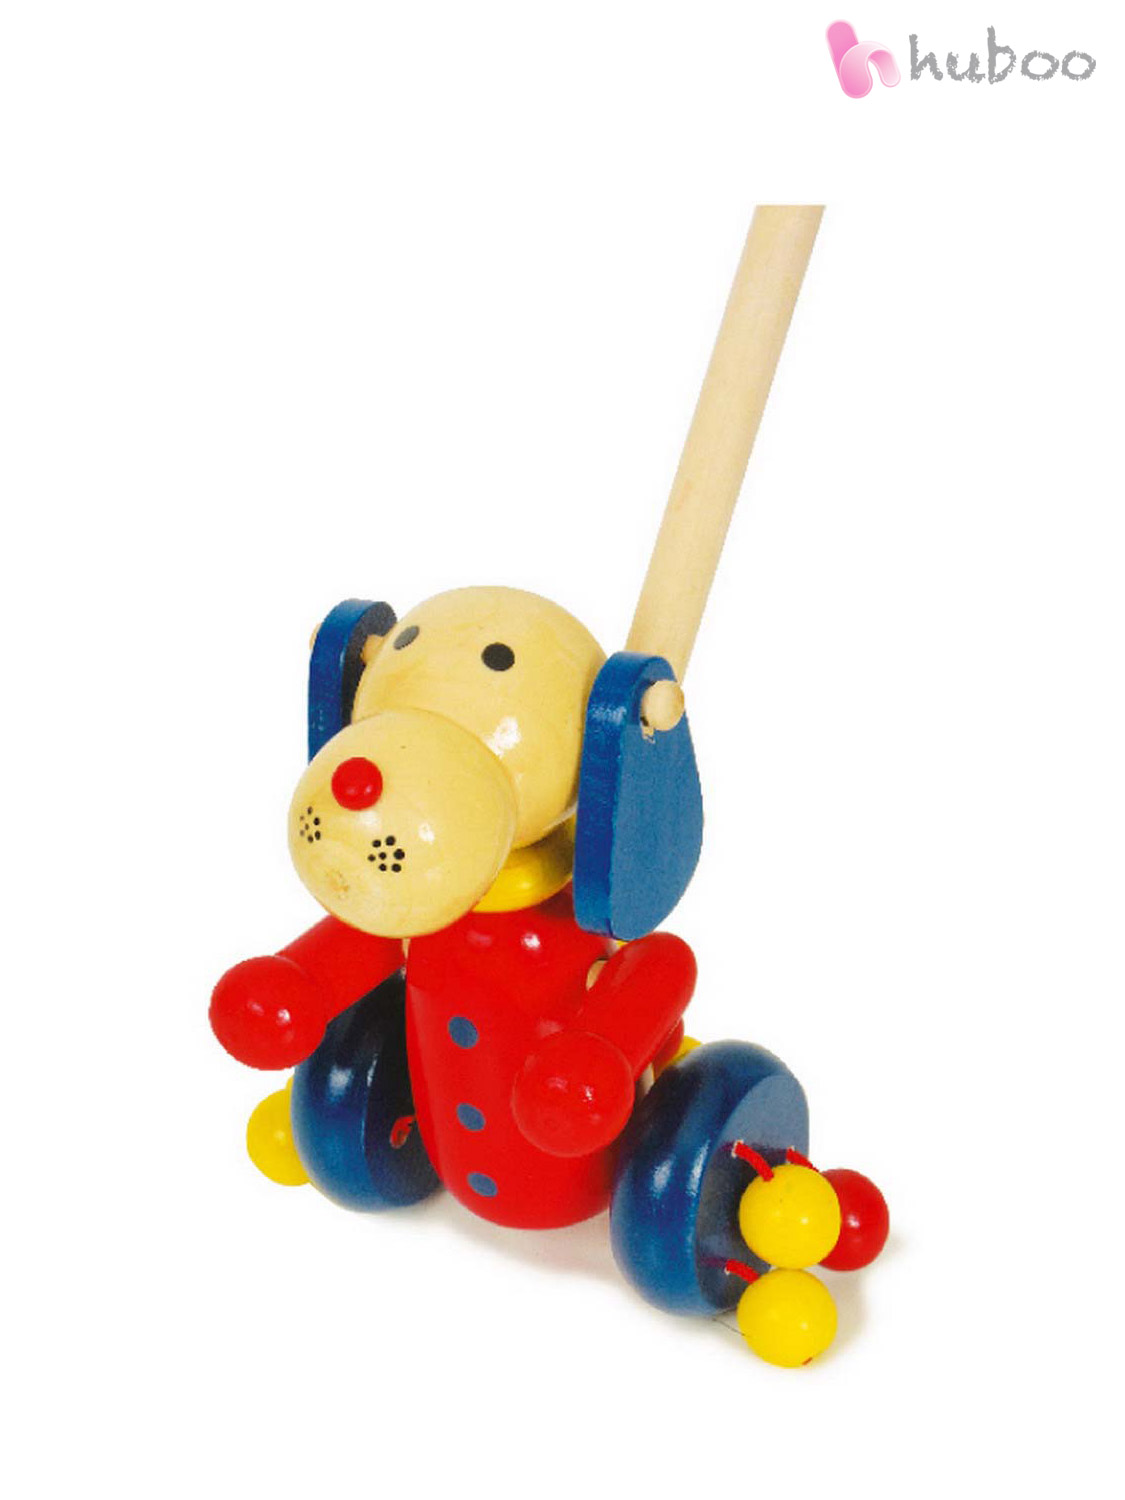 Wooden Toys For Pre School : Chunky wooden pushalong animal toys push along baby